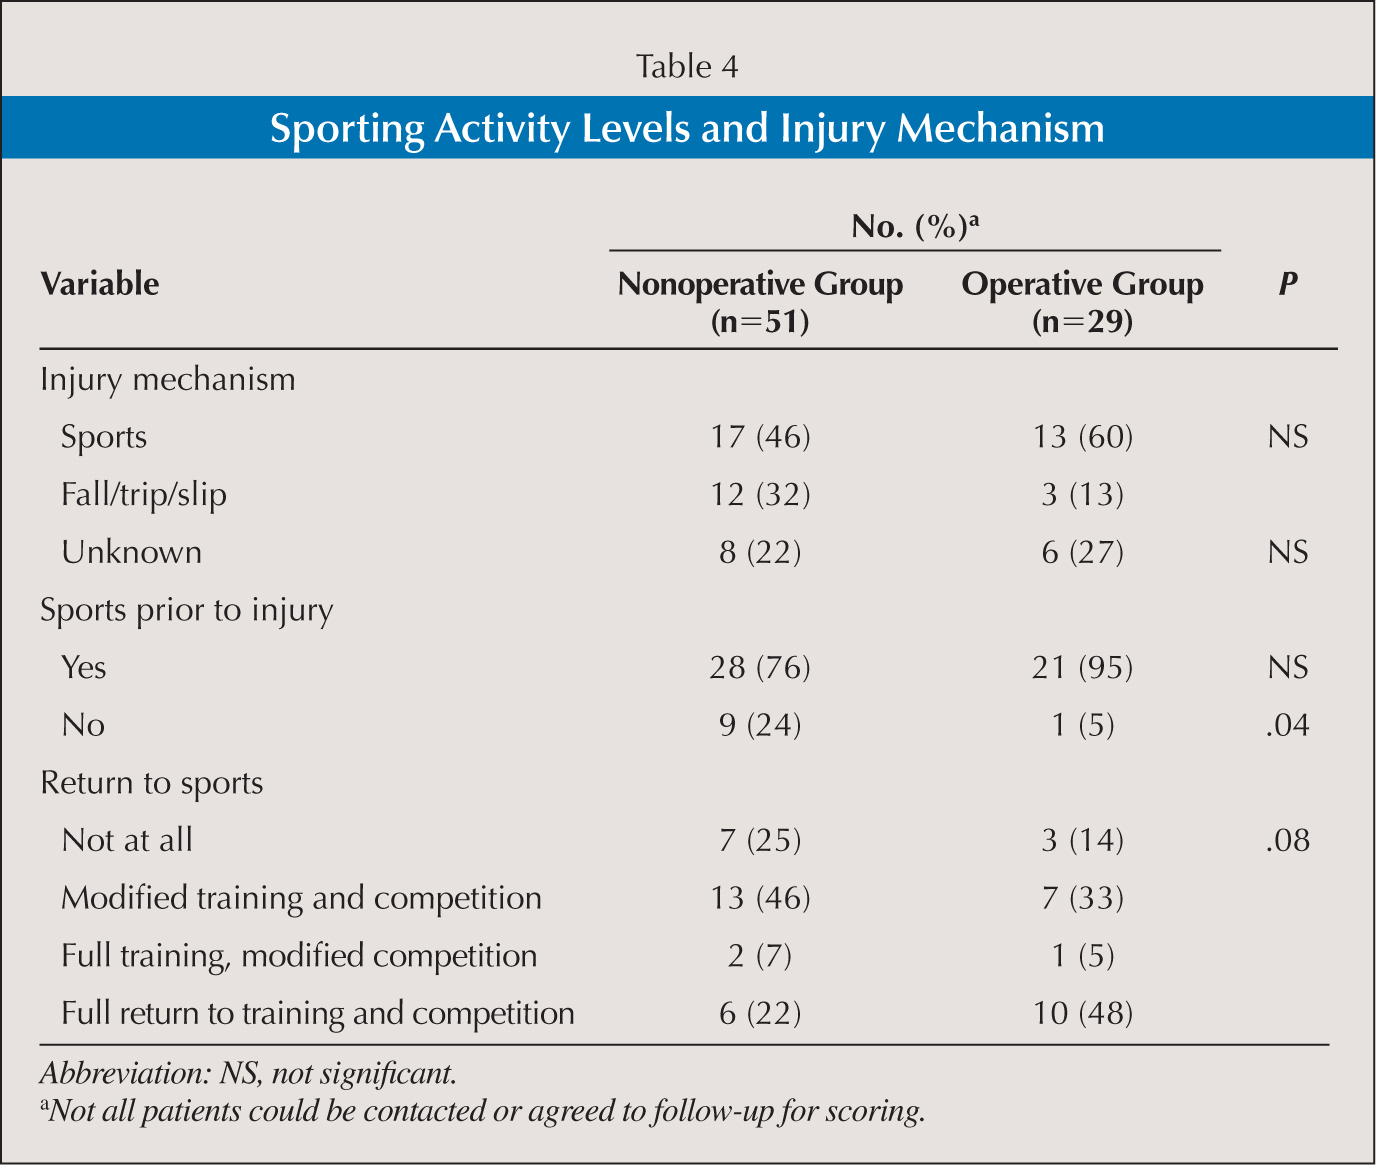 Achilles tendon rupture physical therapy - Sporting Activity Levels And Injury Mechanism